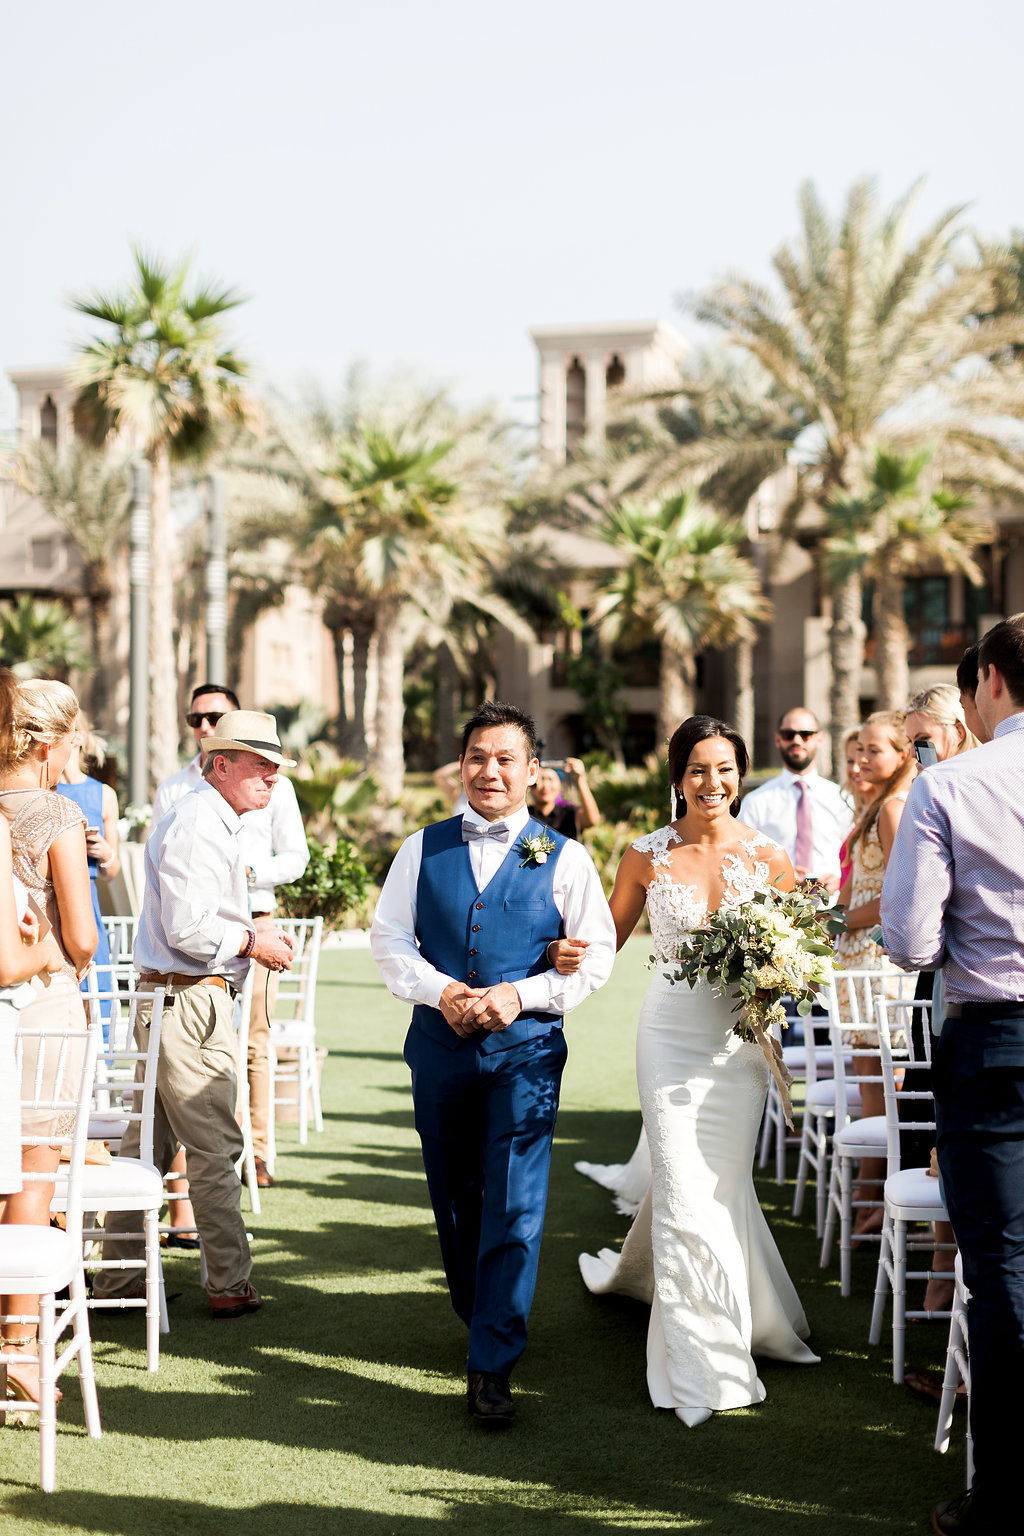 Maria_Sundin_Photography_Wedding_Dubai_Magnolia_Al_Qasr_Gemma_Ryan-180